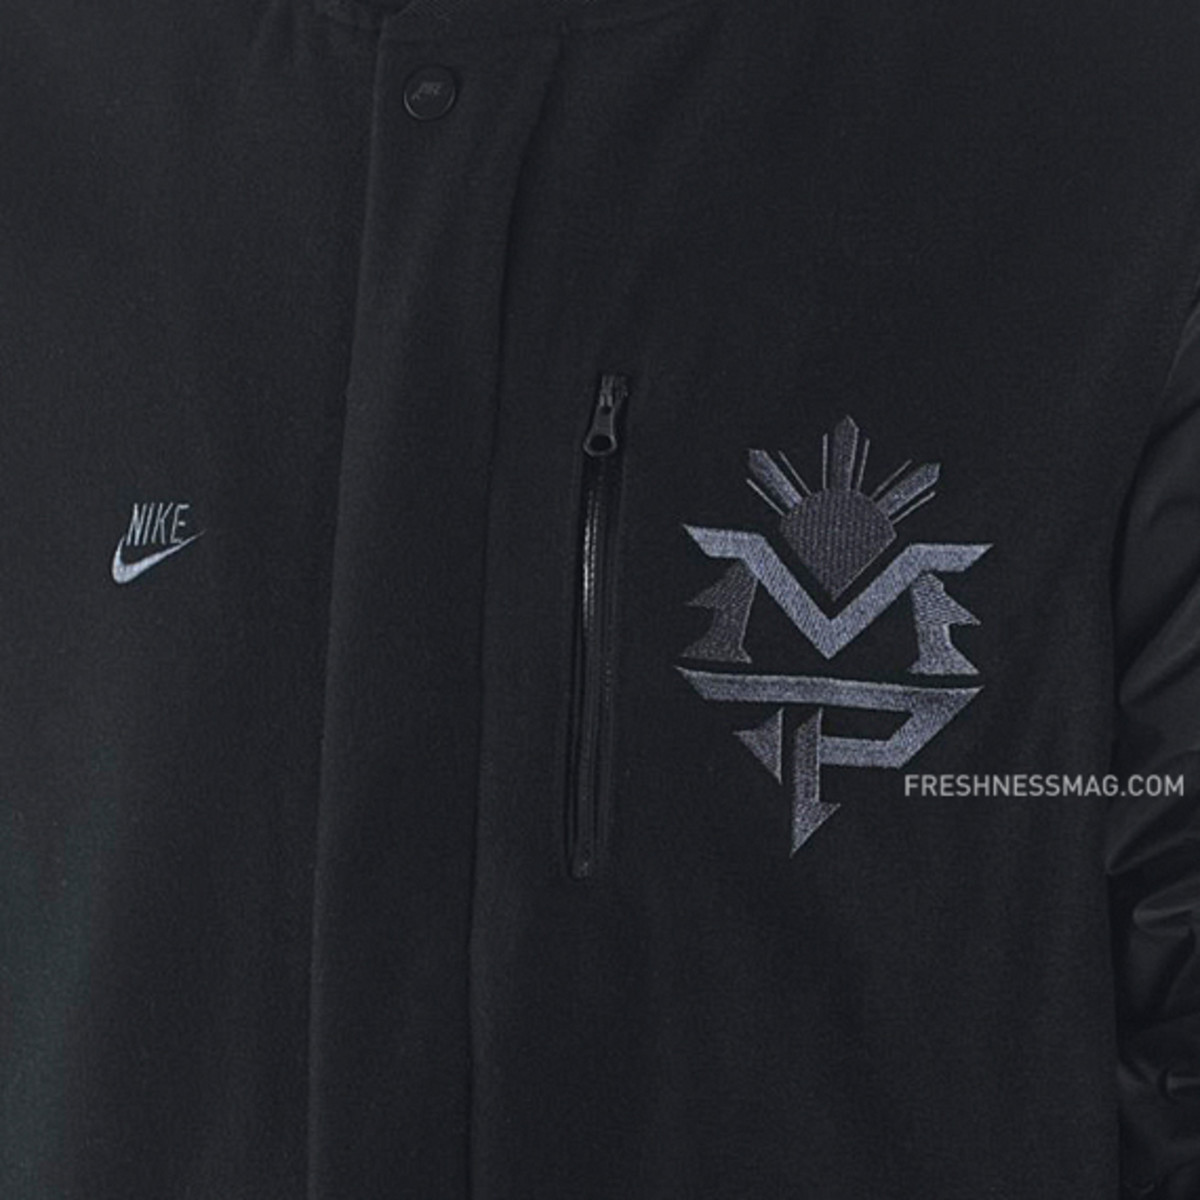 Nike-Manny-Pacquiao-Destroyer-jacket-439819-010-03